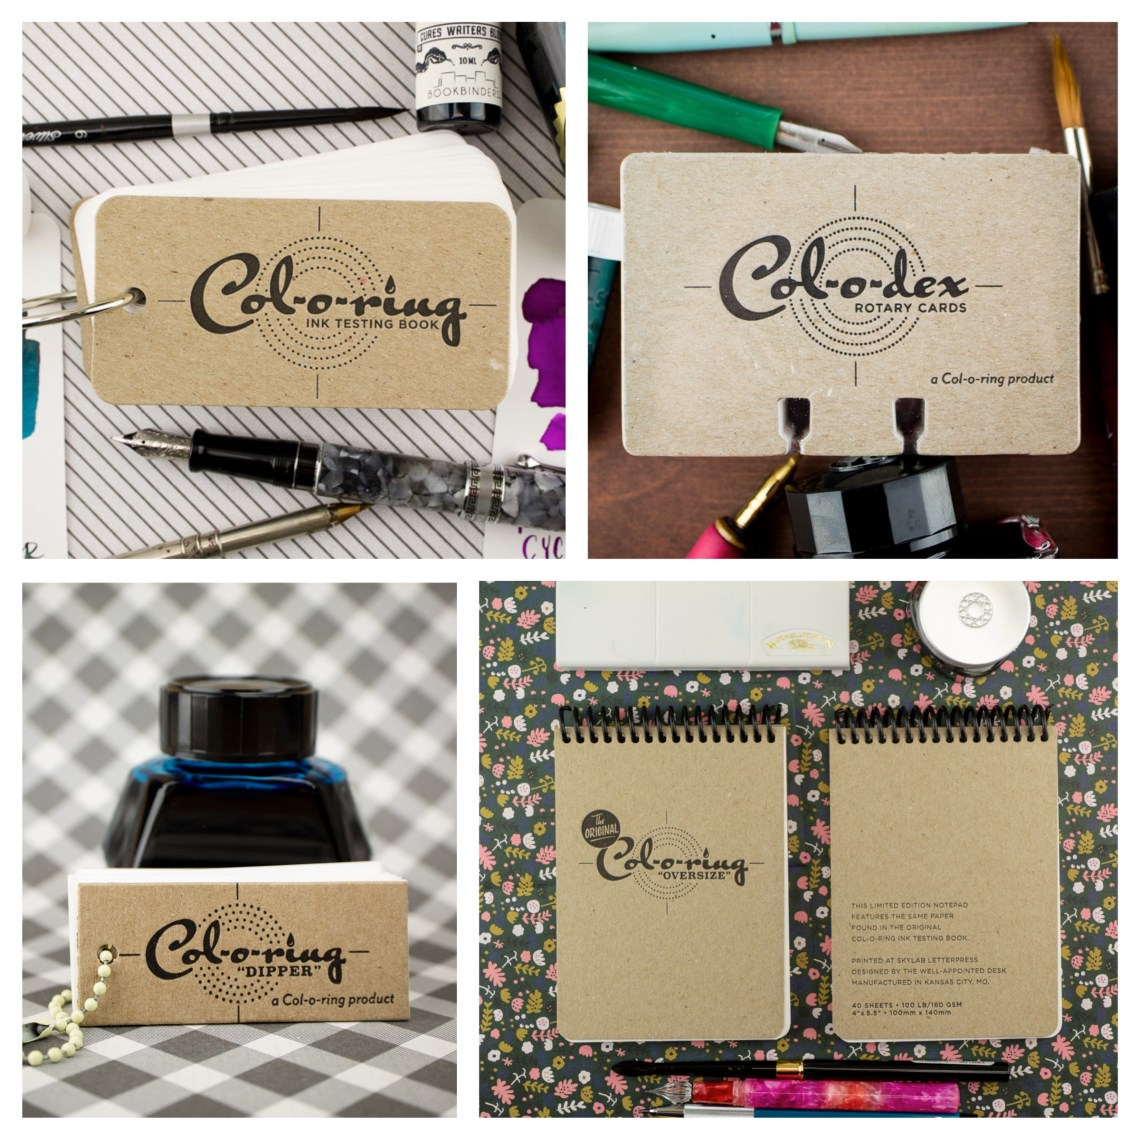 All Col-o-ring Products